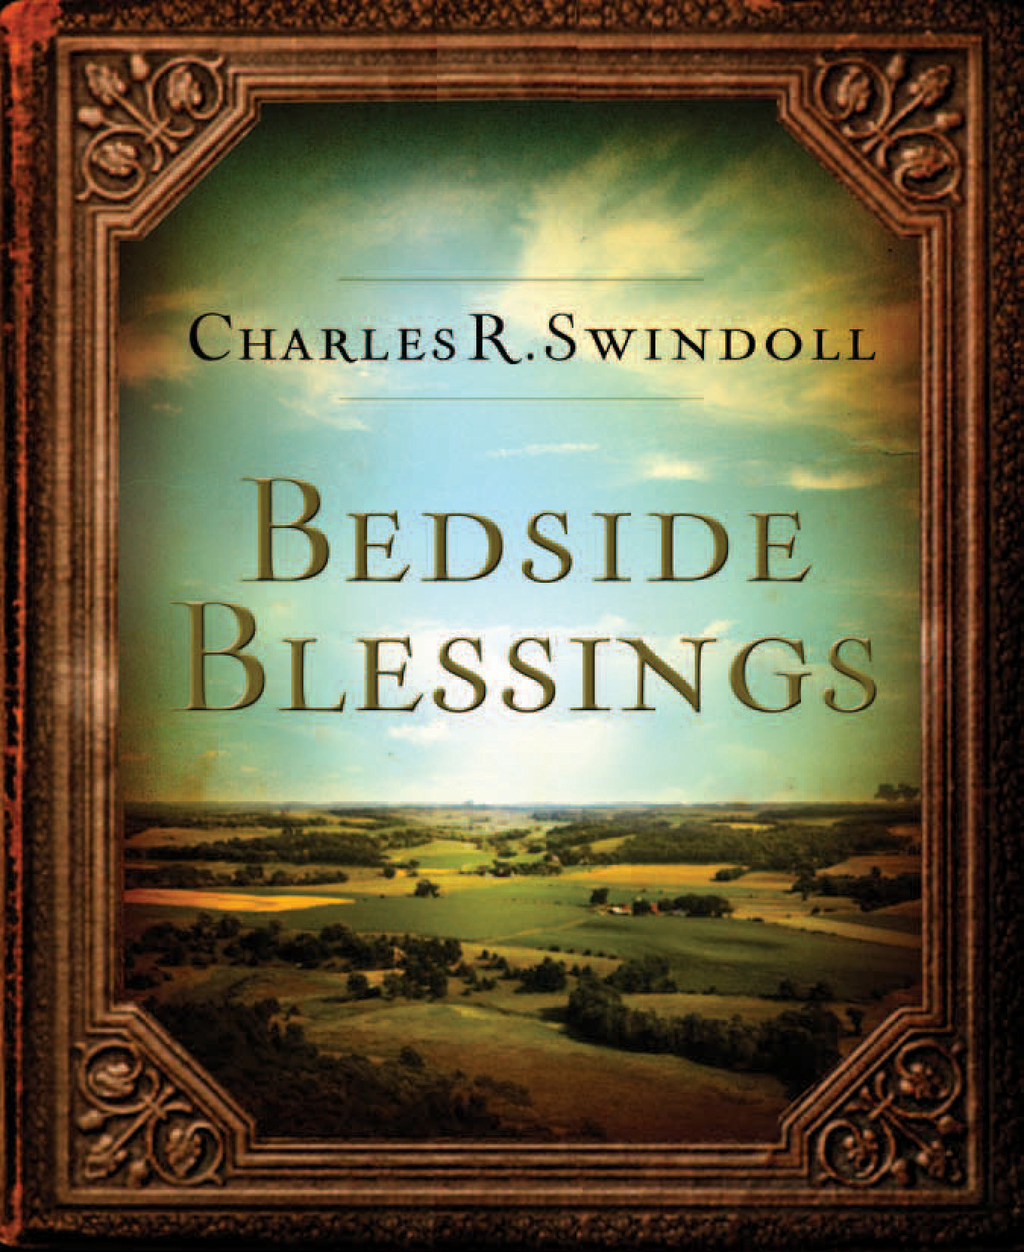 Bedside Blessings By: Charles R. Swindoll